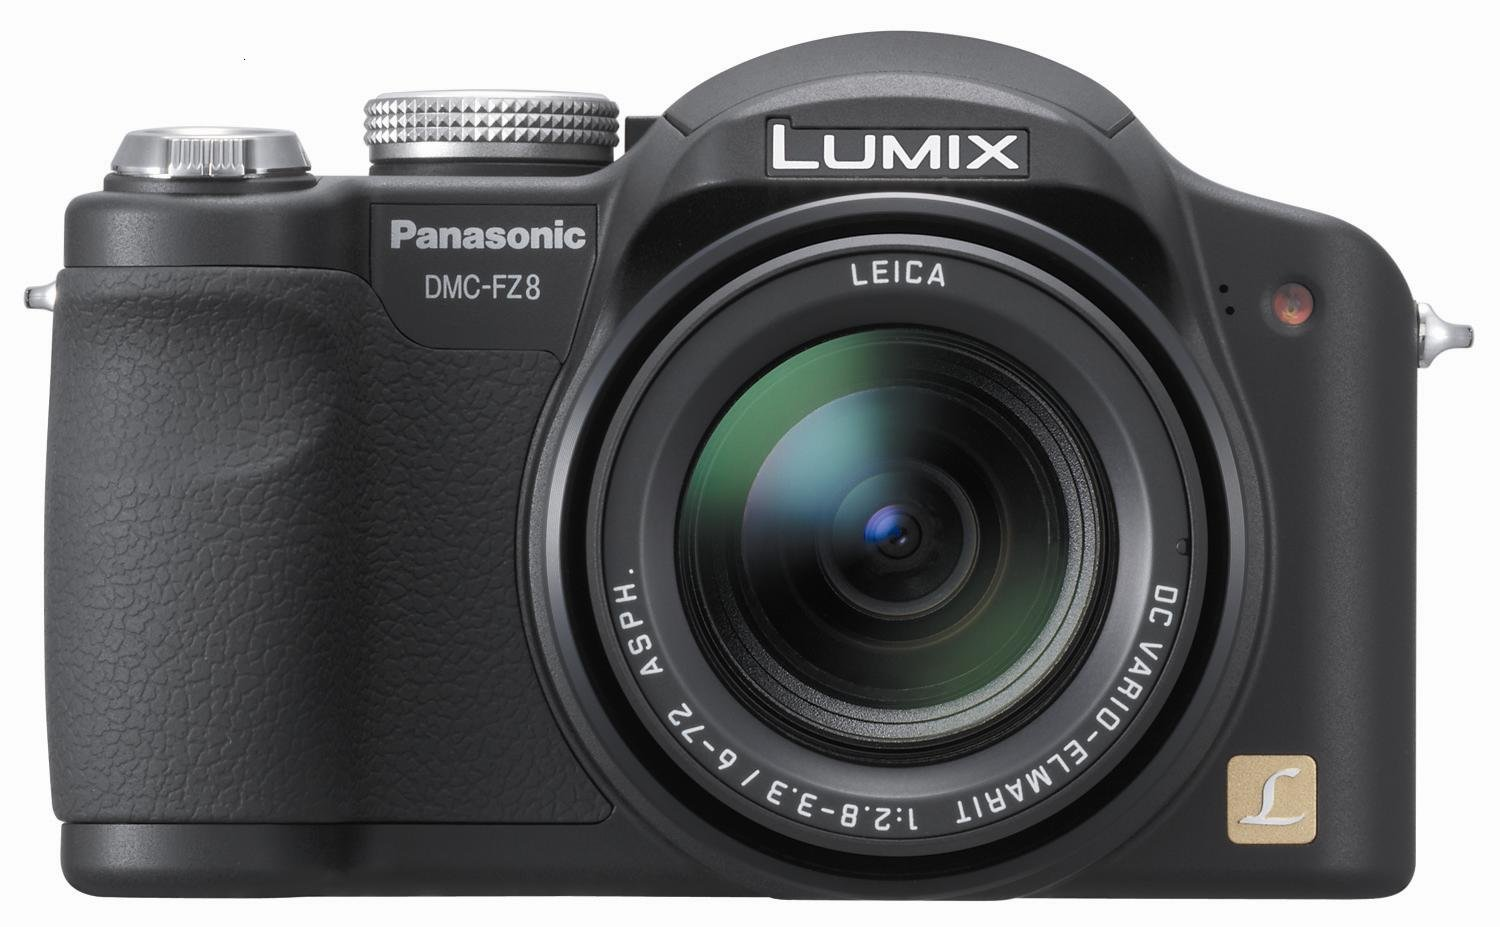 panasonic lumix z28 user guide open source user manual u2022 rh userguidetool today Panasonic Lumix DMC GF6 Panasonic Lumix DMC GF6